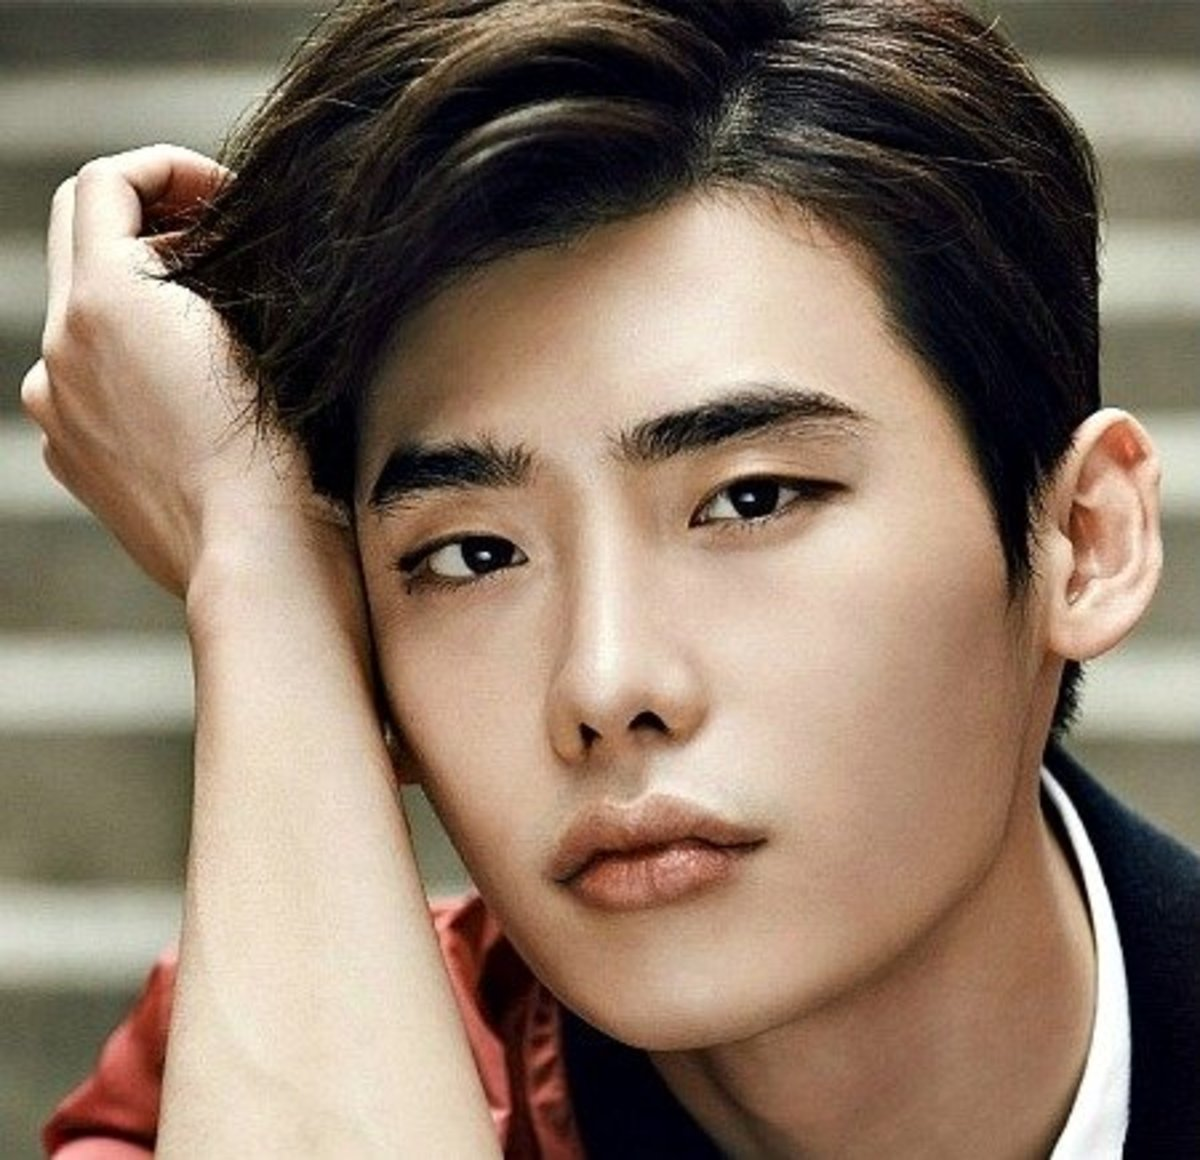 Lee Jong Suk | Top 10 Most Popular and Handsome Korean Drama Actors